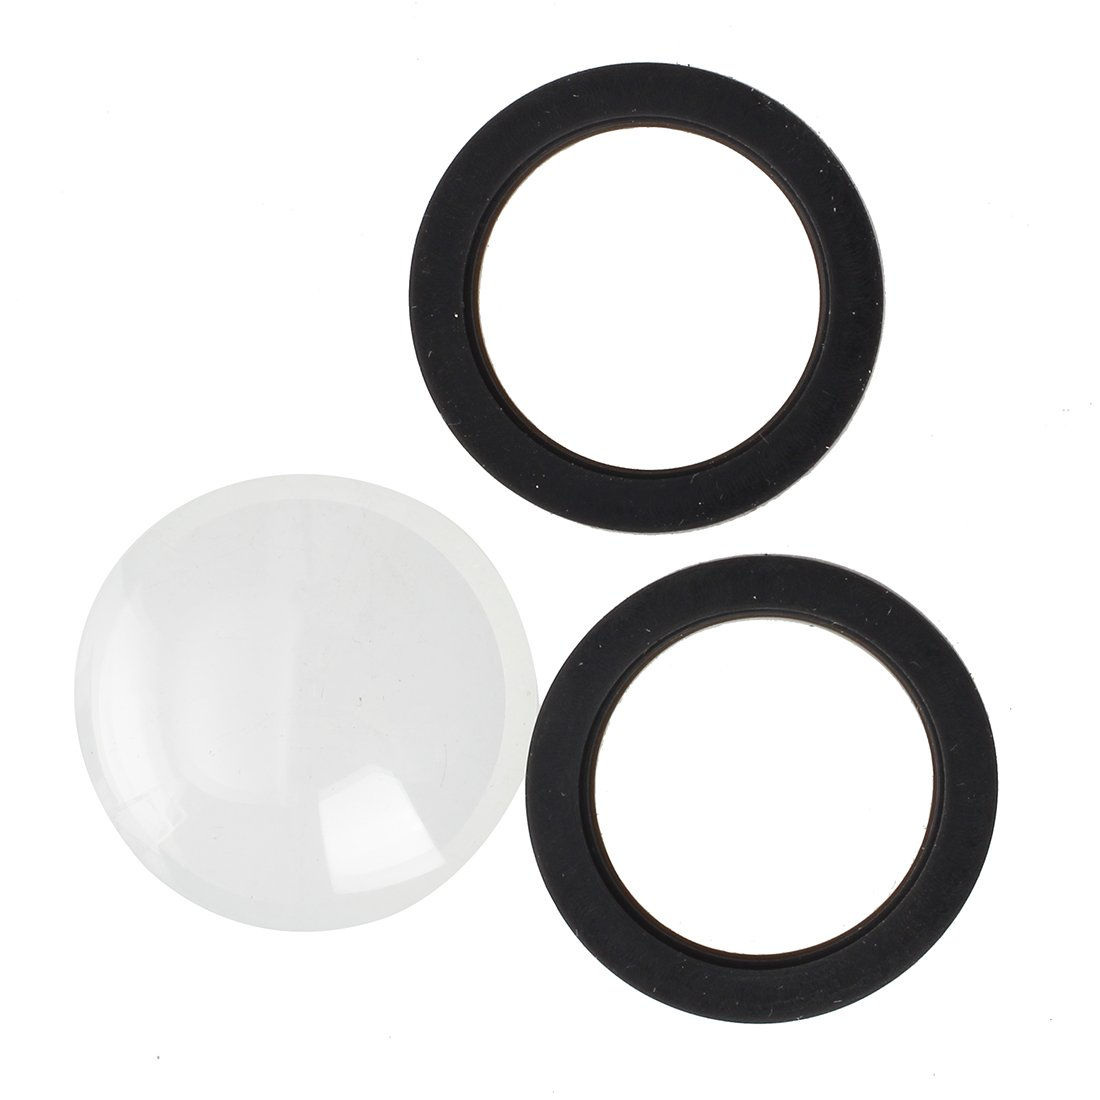 SODIAL(R) Glass Cover Lens Replacement Kit for Gopro Hero 2/1 Waterproof Housing Case 020955